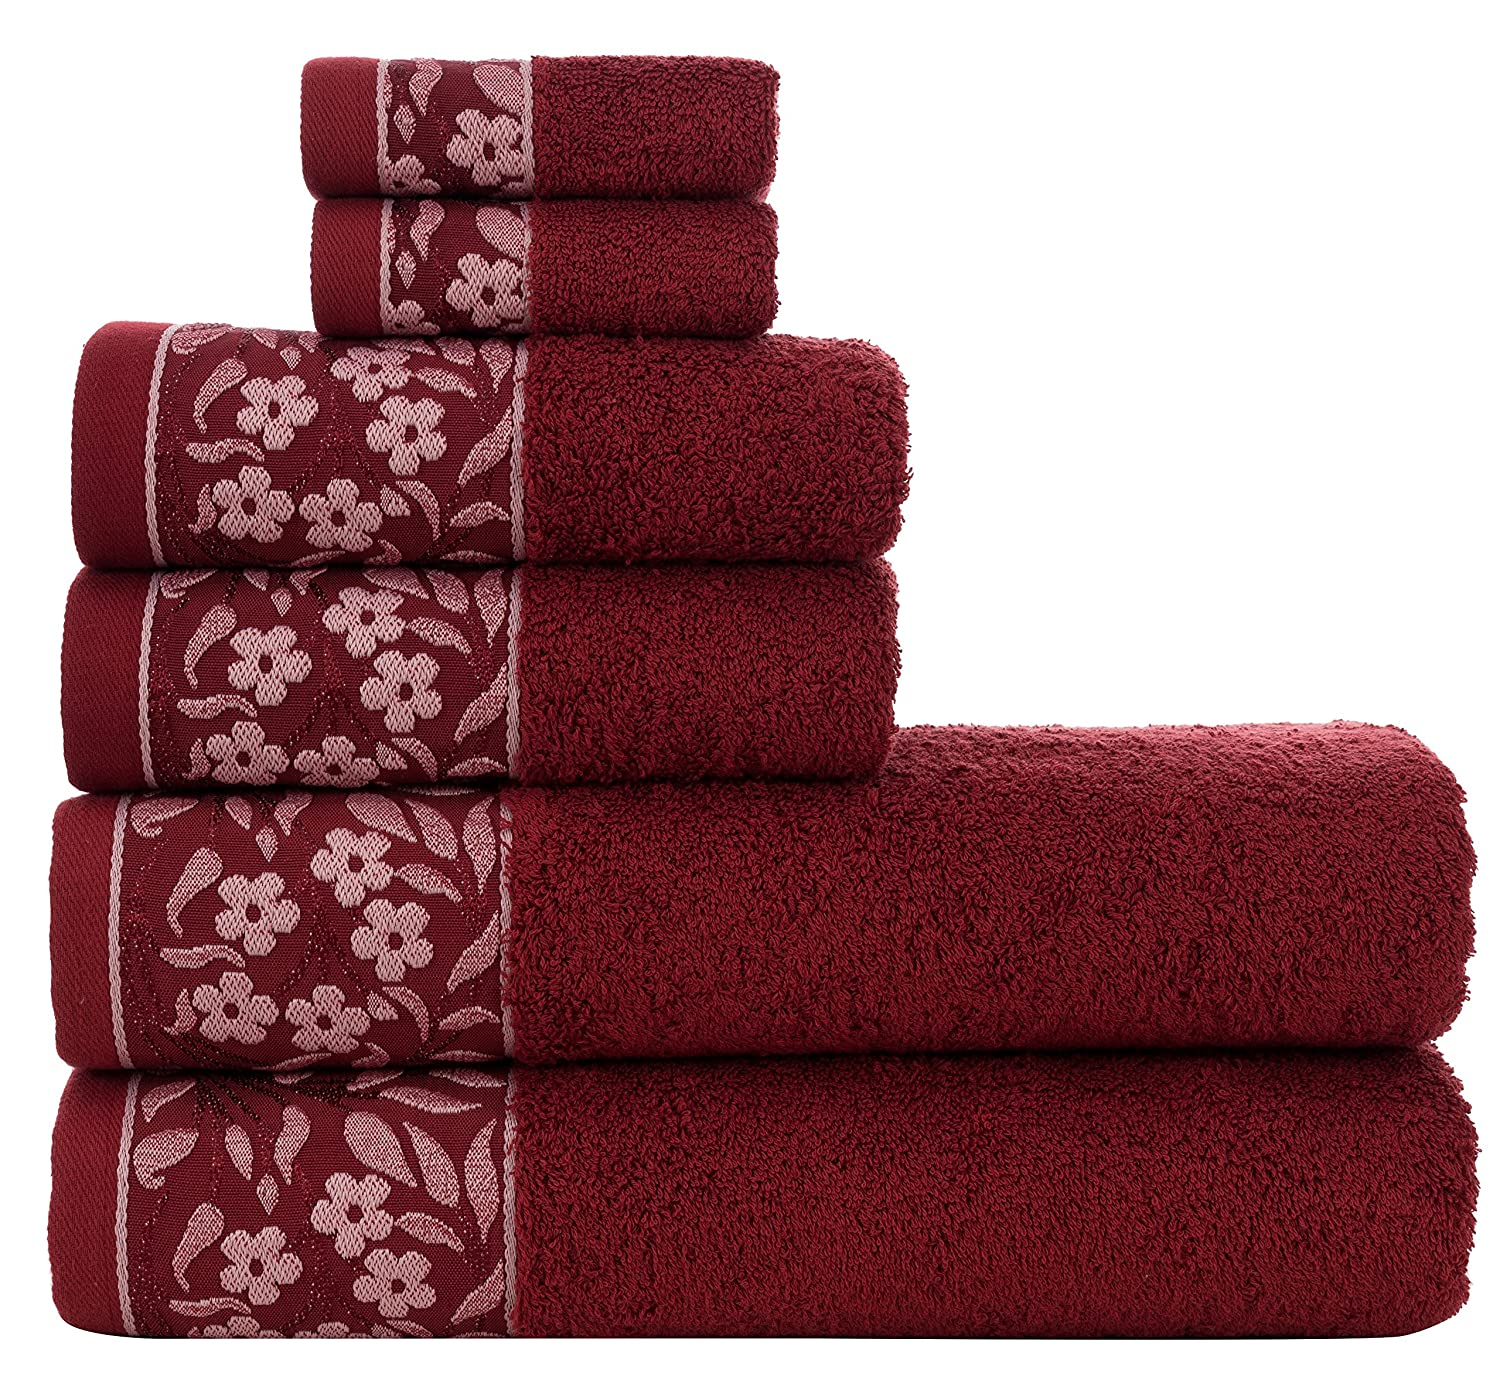 HYGGE Premium 100% Turkish Cotton Towel Set with Floral Jacquard; 2 Bath Towels (27' x 56'); 2 Hand Towels (19' x 32'); 2 Washcloths (12' x 12') (Grey)